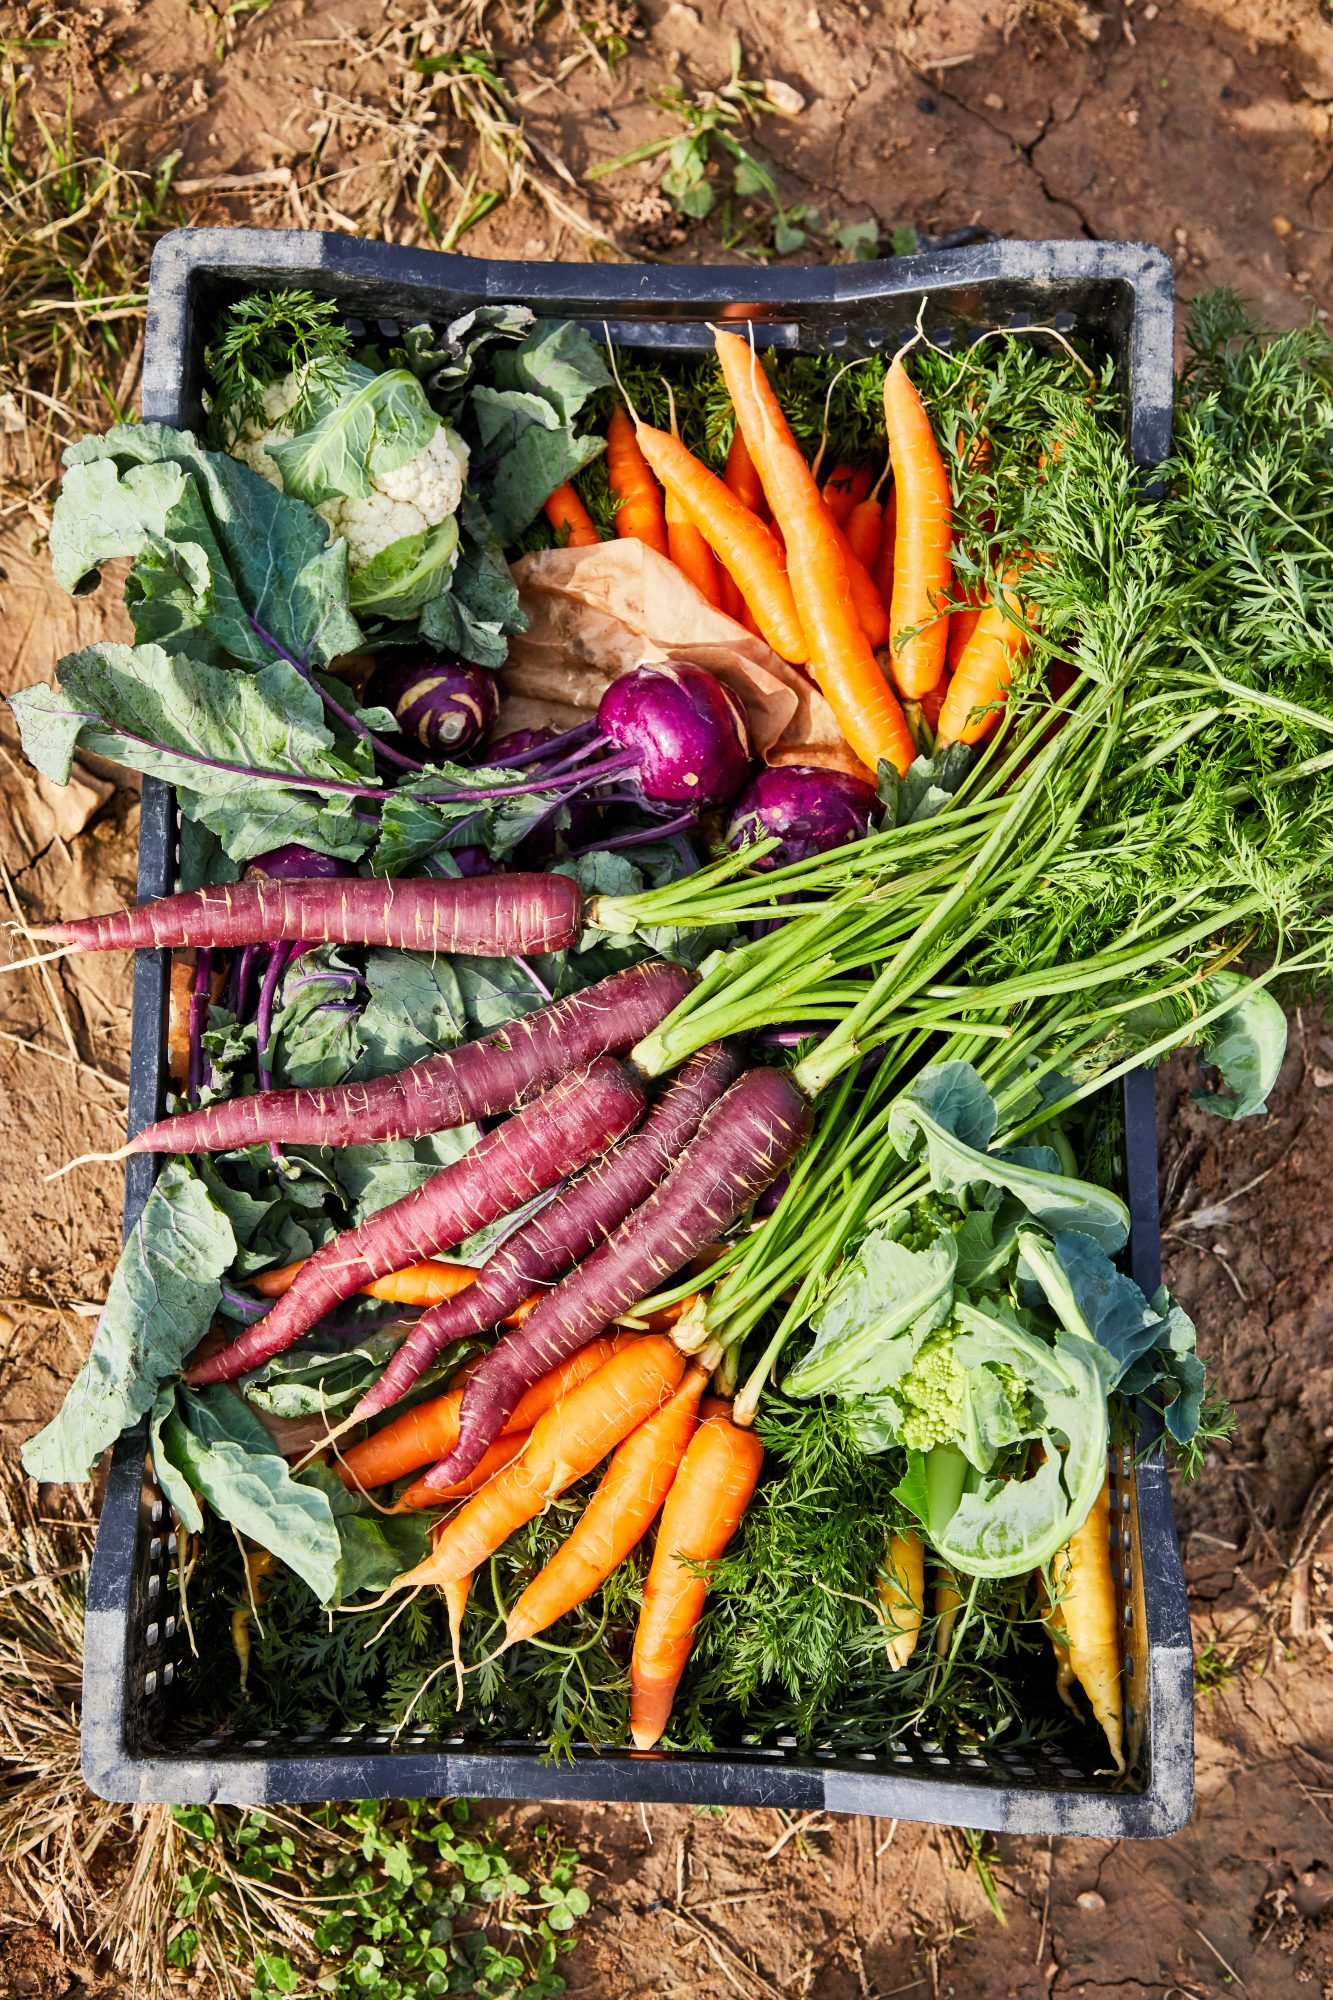 Fall produce from Gaining Ground Farm in North Carolina